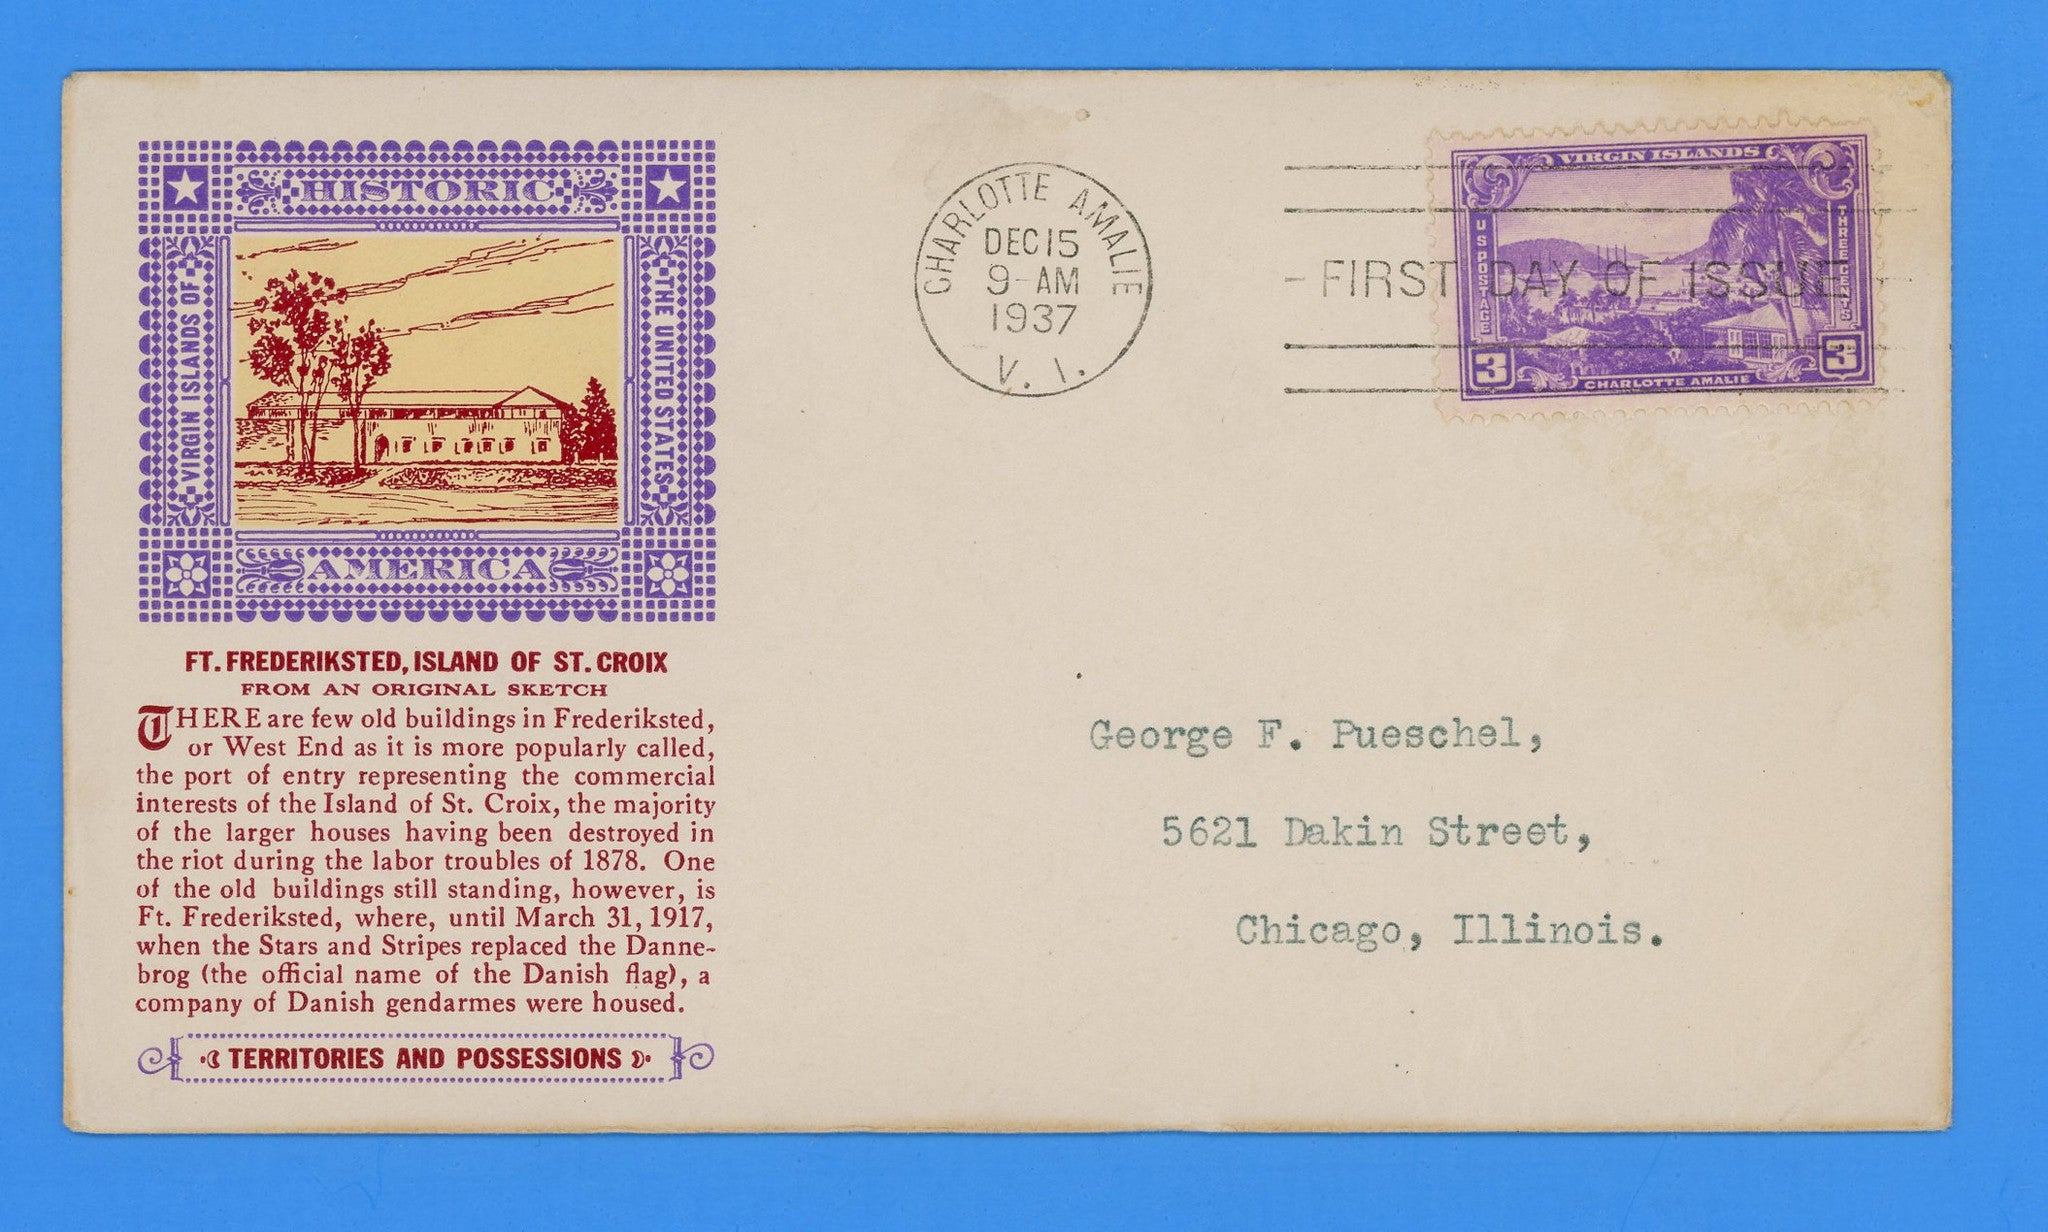 Scott #802 3c Virgin Islands First Day Cover by Eugene Laird